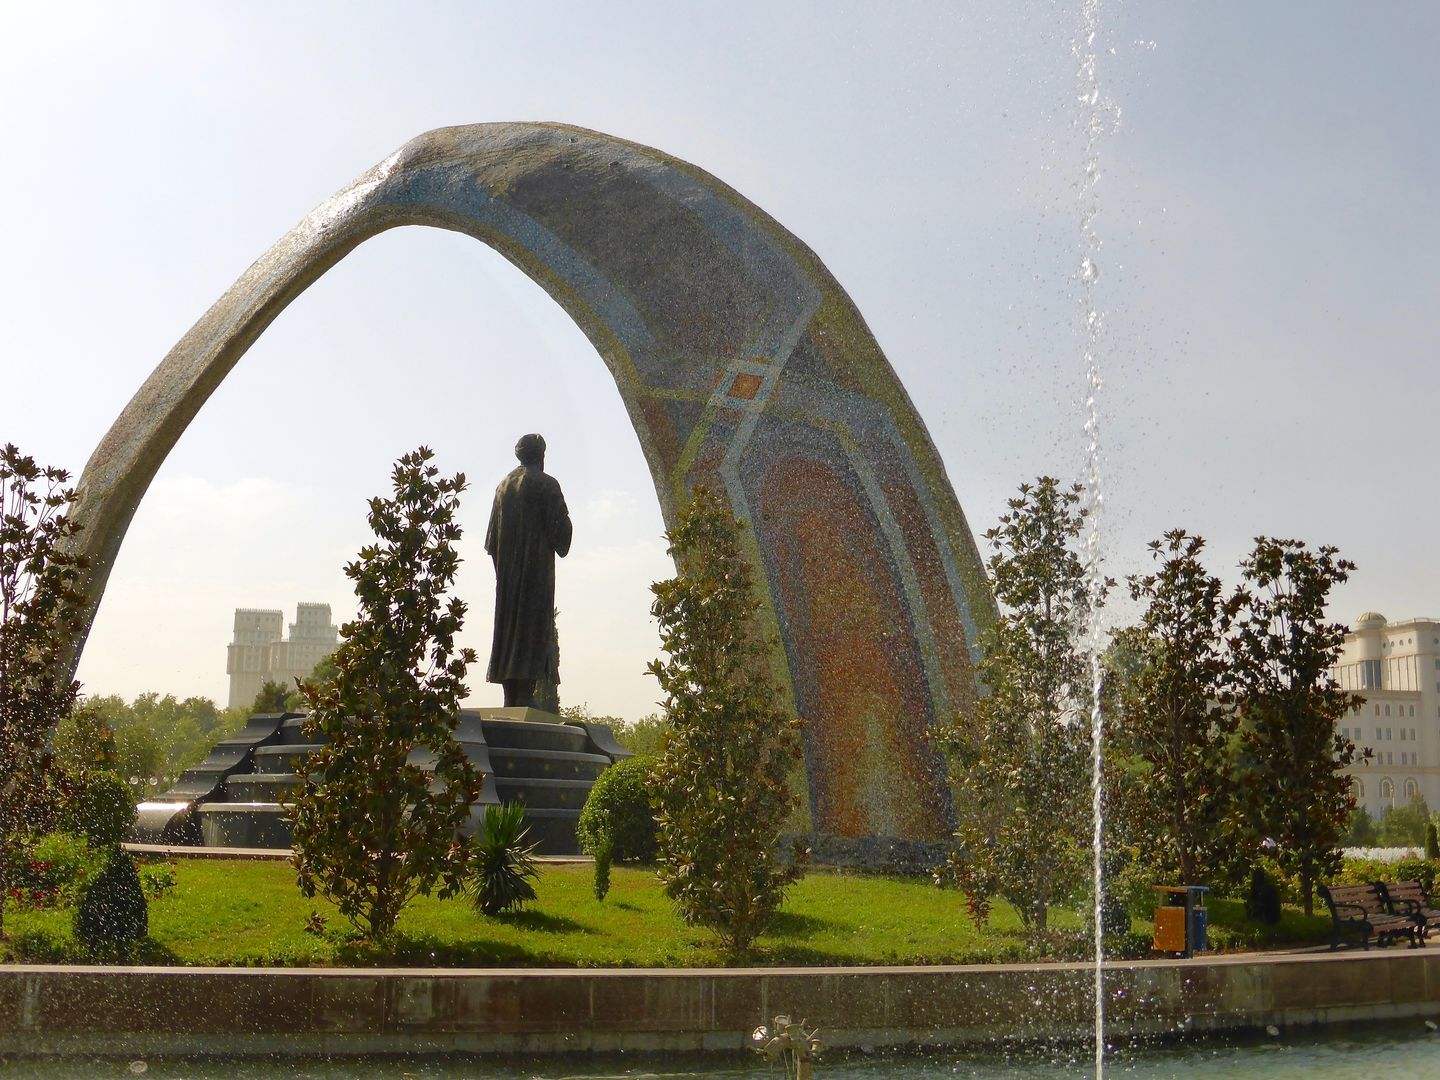 Rudaki Park in Dushanbe, Central Asia